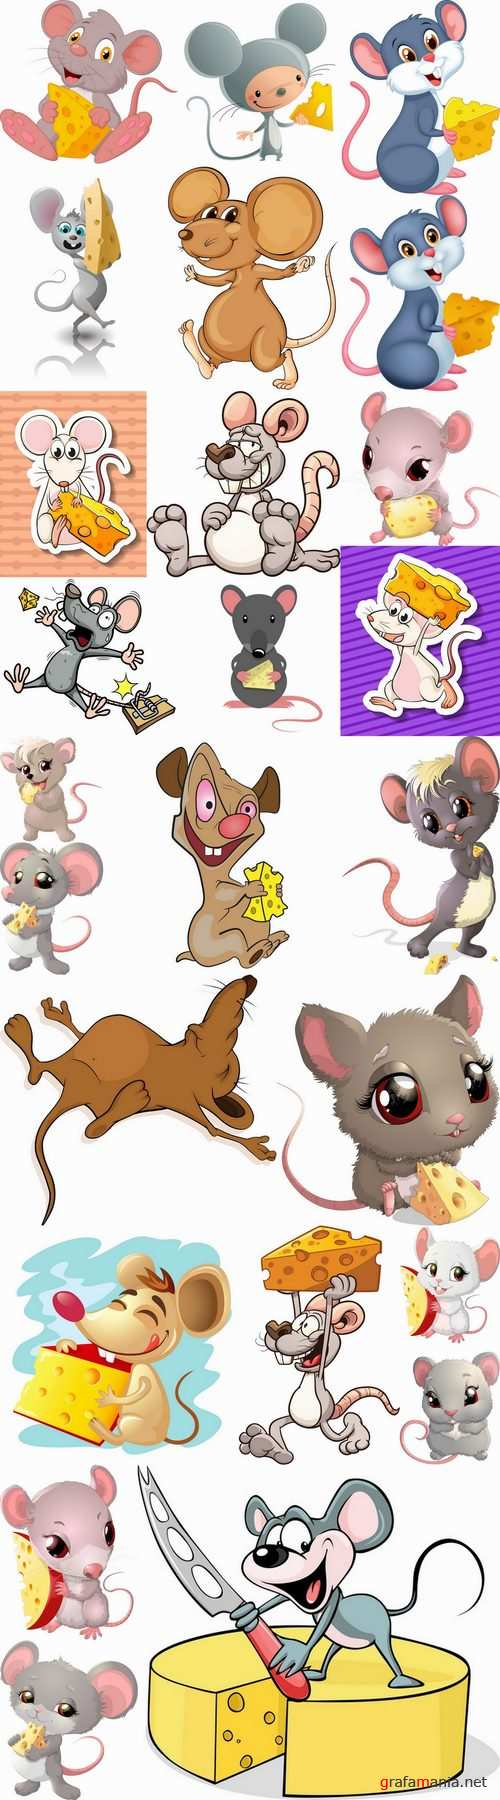 Mouse cheese mousetrap full stomach vector image 25 EPS